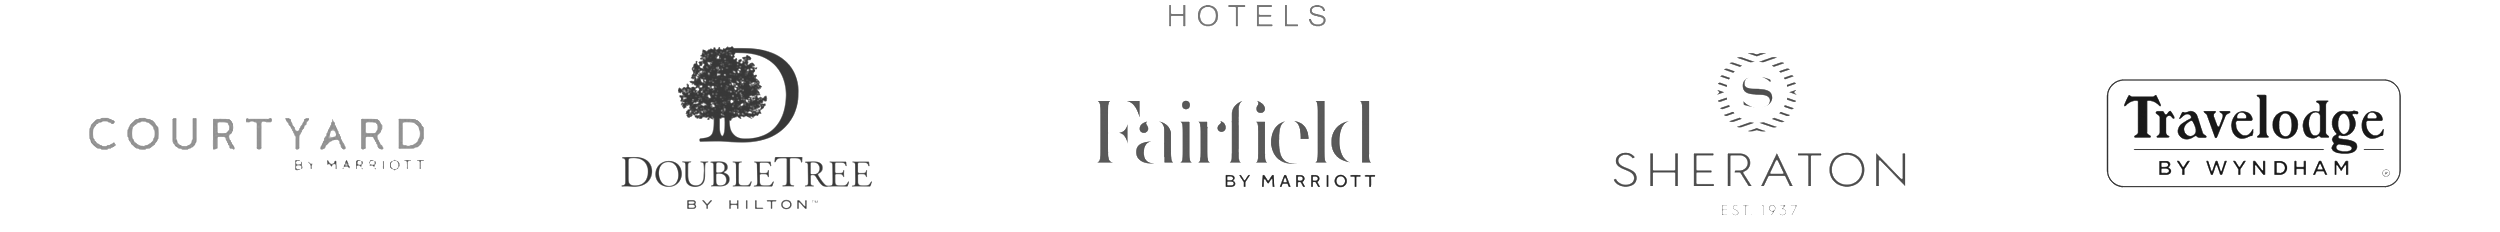 Hotels: Courtyard by Marriot, DoubleTree by Hilton, Fairfield by Marriot, Sheraton, and Travelodge Logos